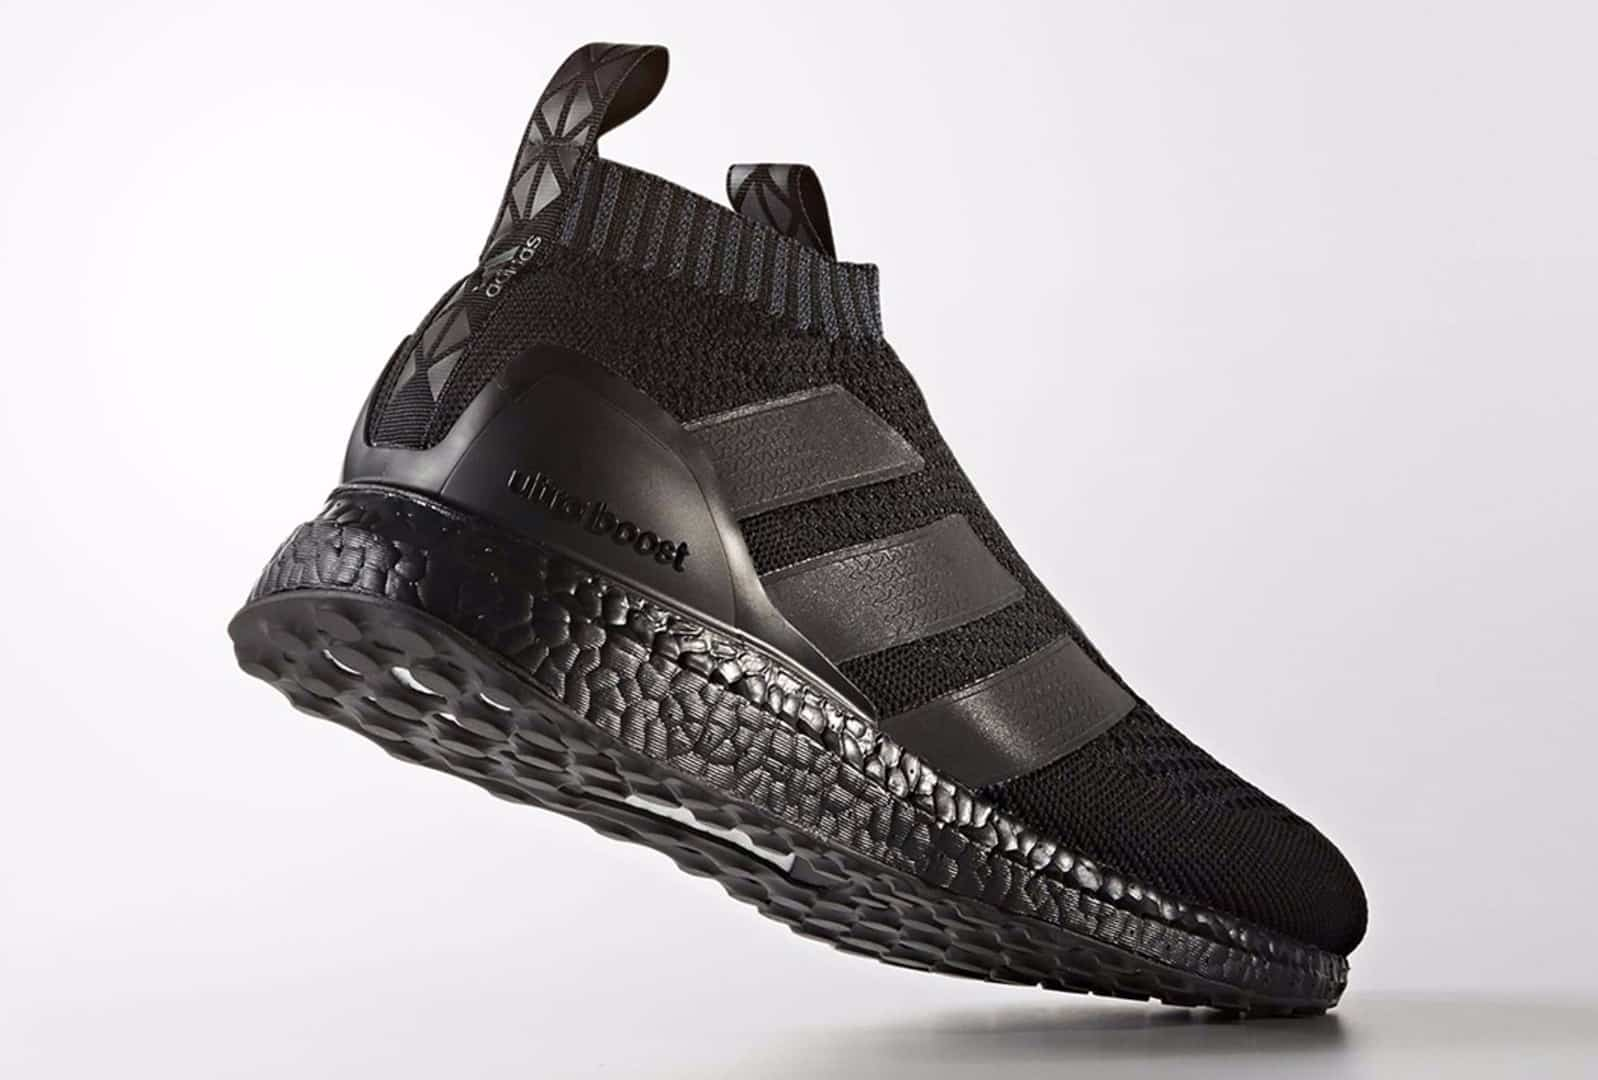 sneakers-adidas-ace16-purecontrol-ultra-boost-triple-black-img2